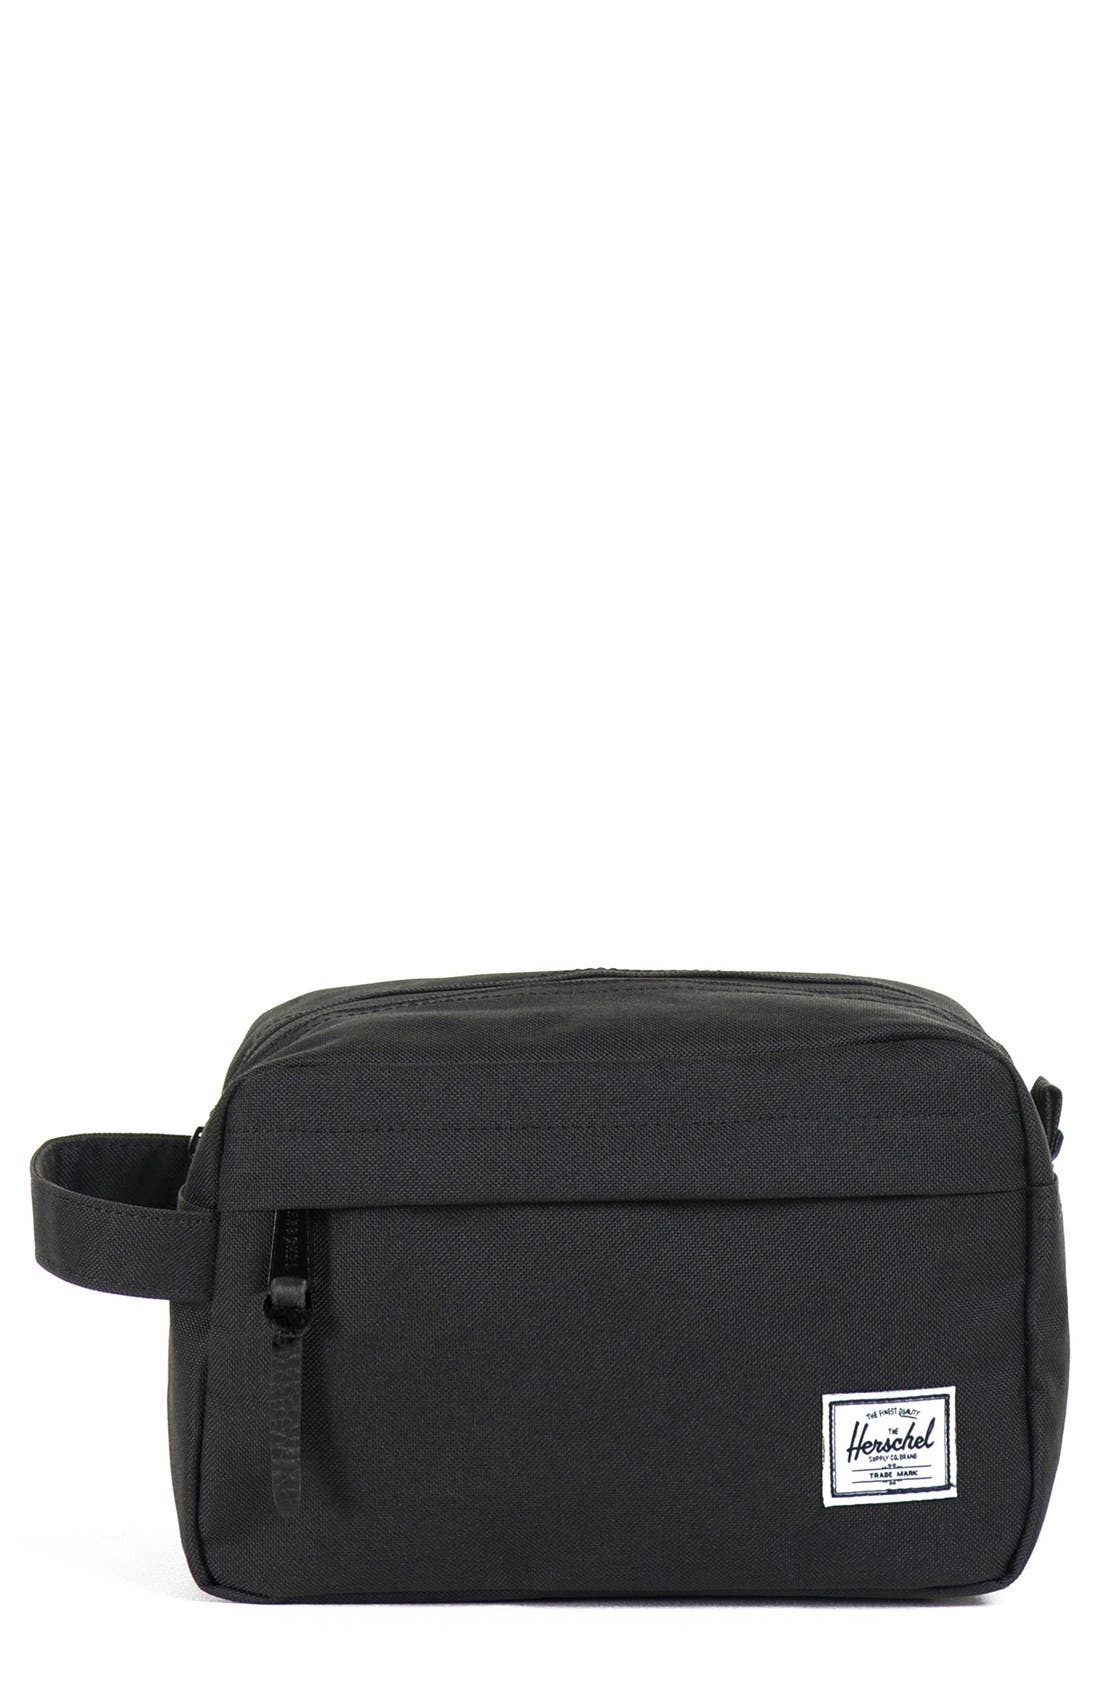 Herschel Supply Co. 'Chapter' Toiletry Case